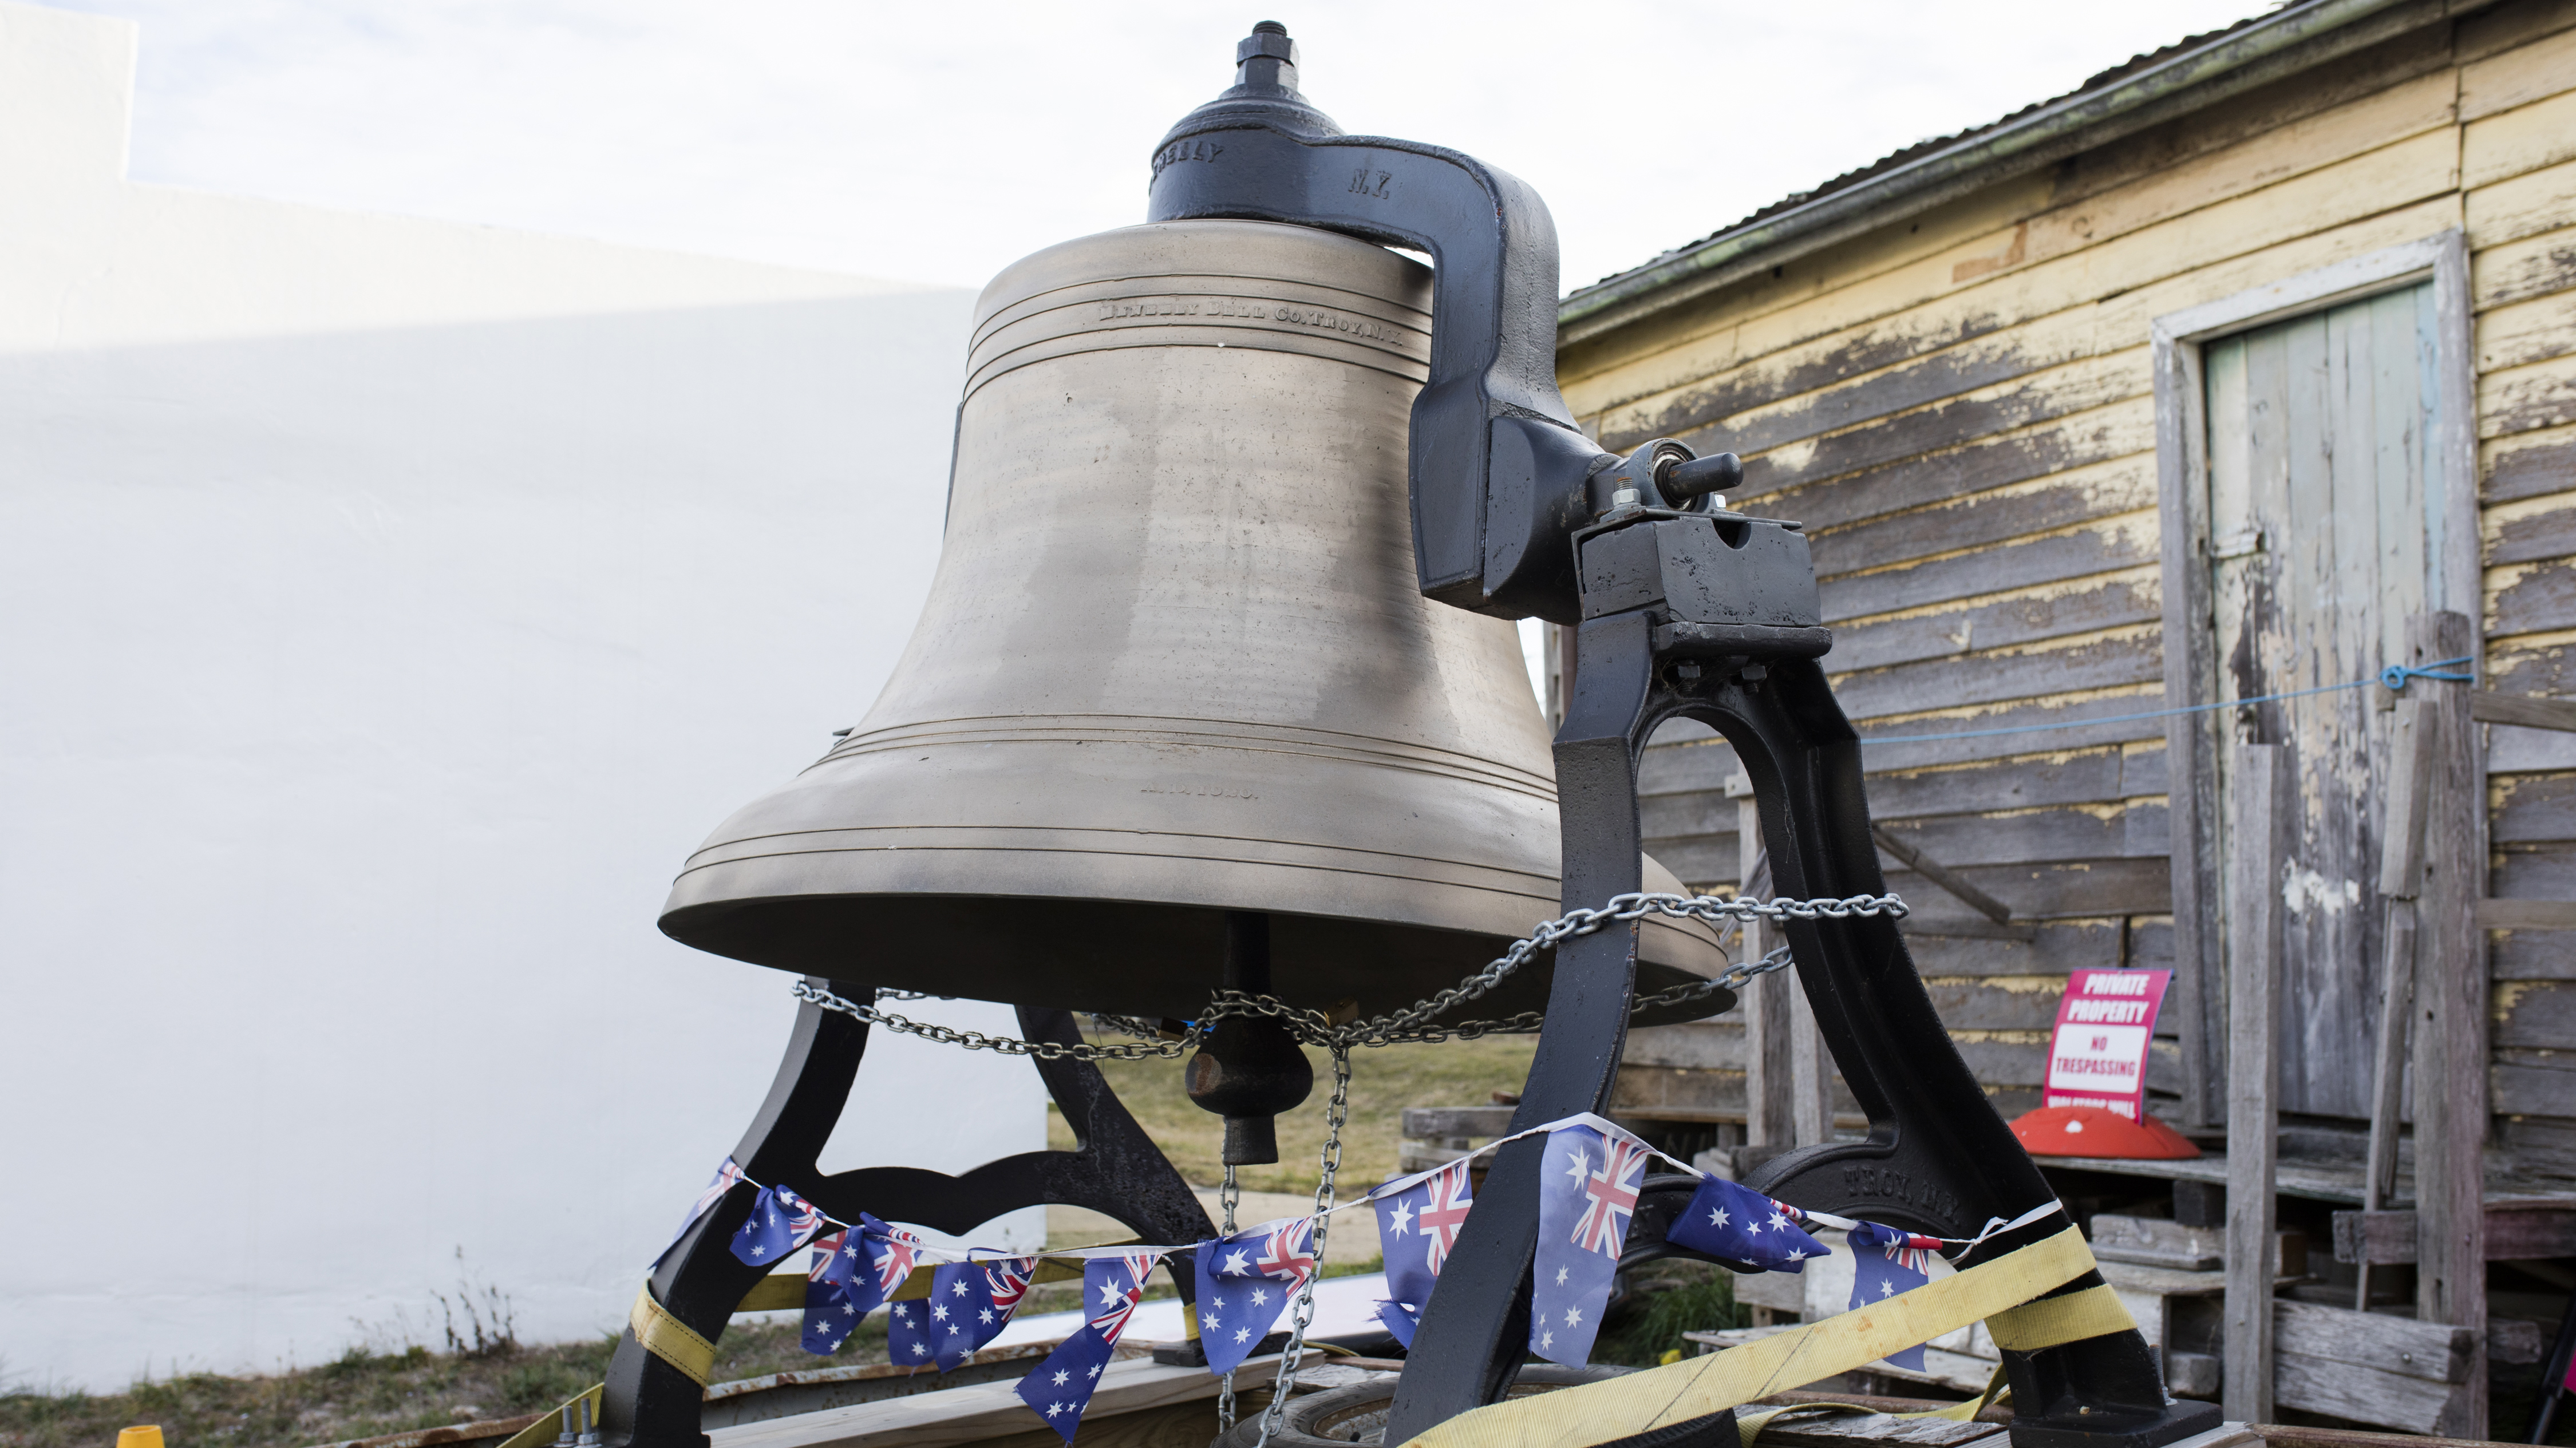 The Nimmity Bell, at Nimmitabel in regional NSW